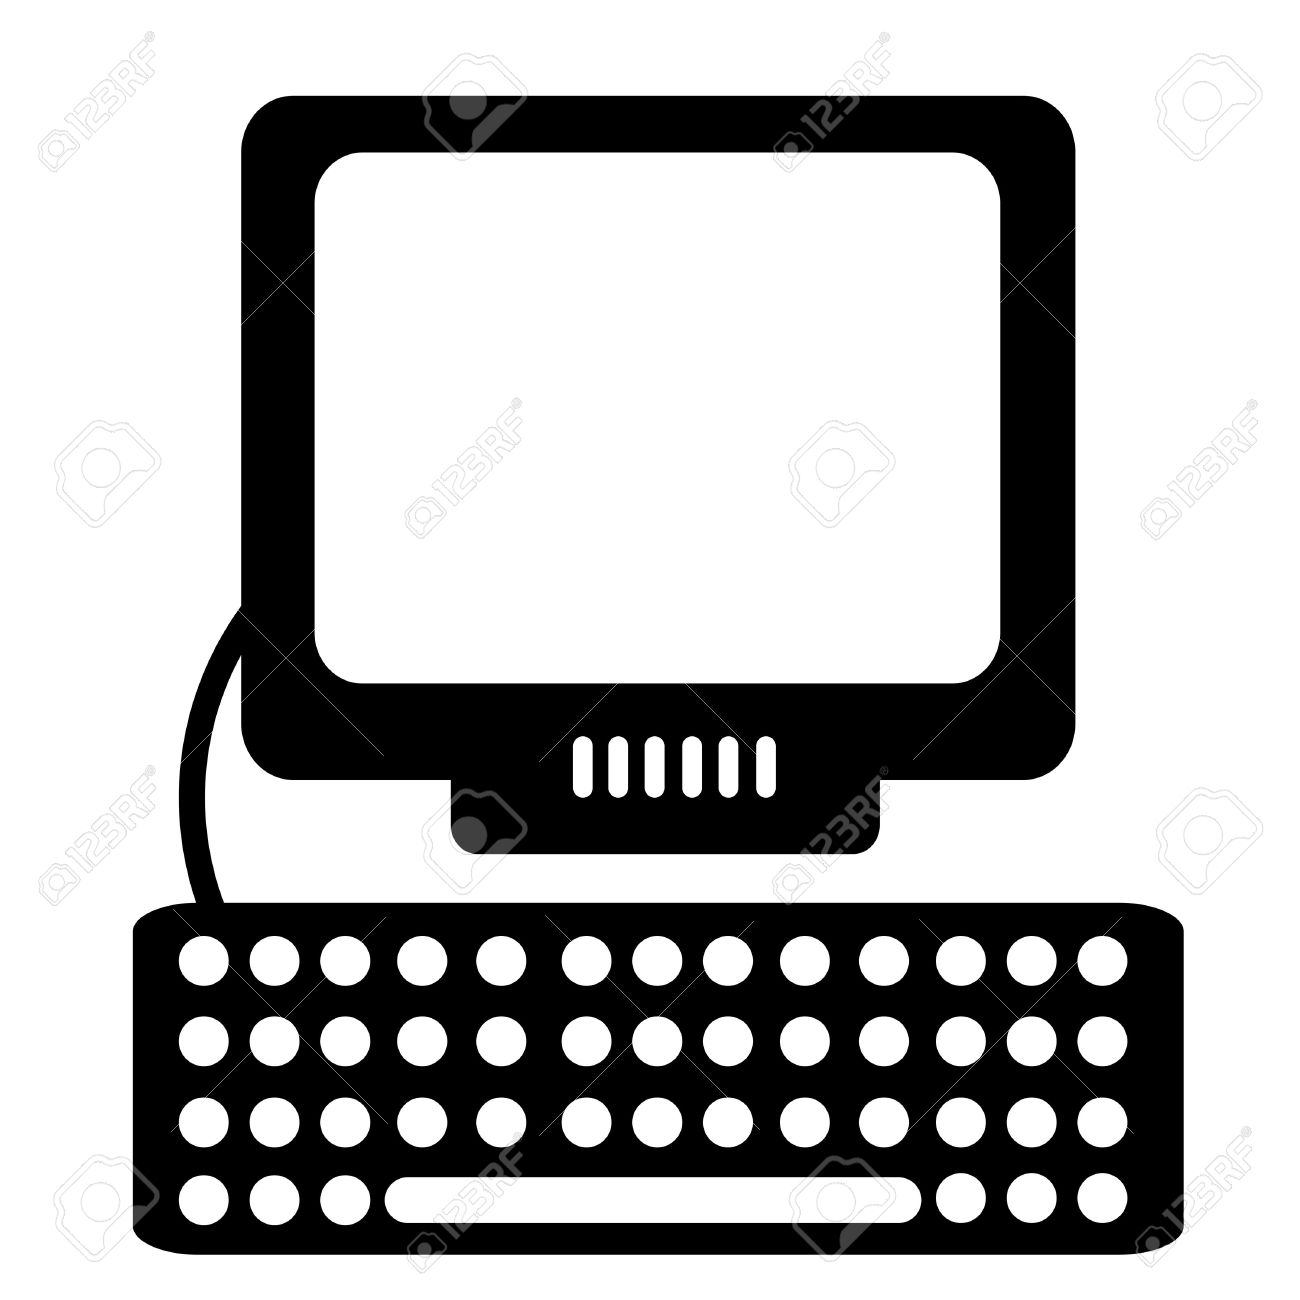 Computer black and white computer clipart black and white.